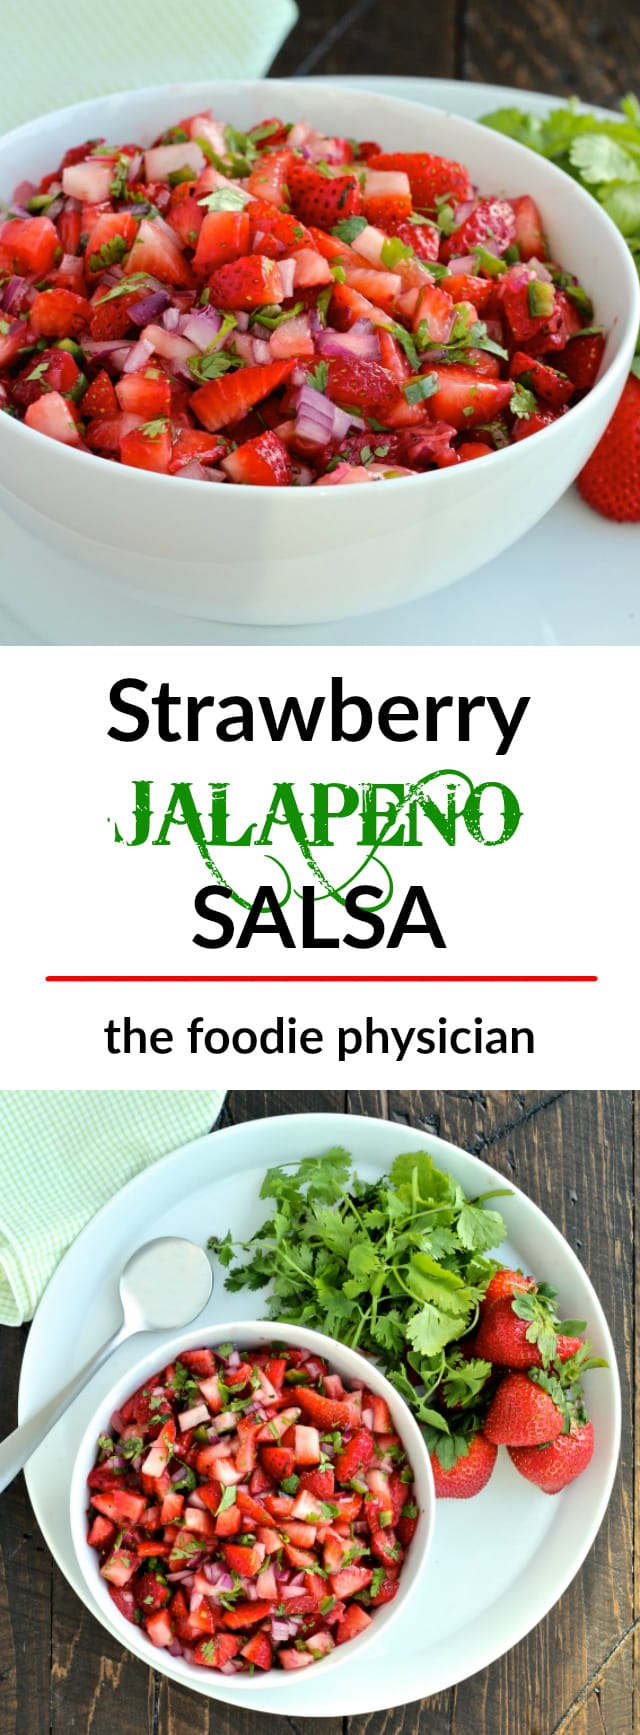 Strawberry Jalapeño Salsa - bursting with flavor, this easy 5 ingredient salsa is perfect for summer!